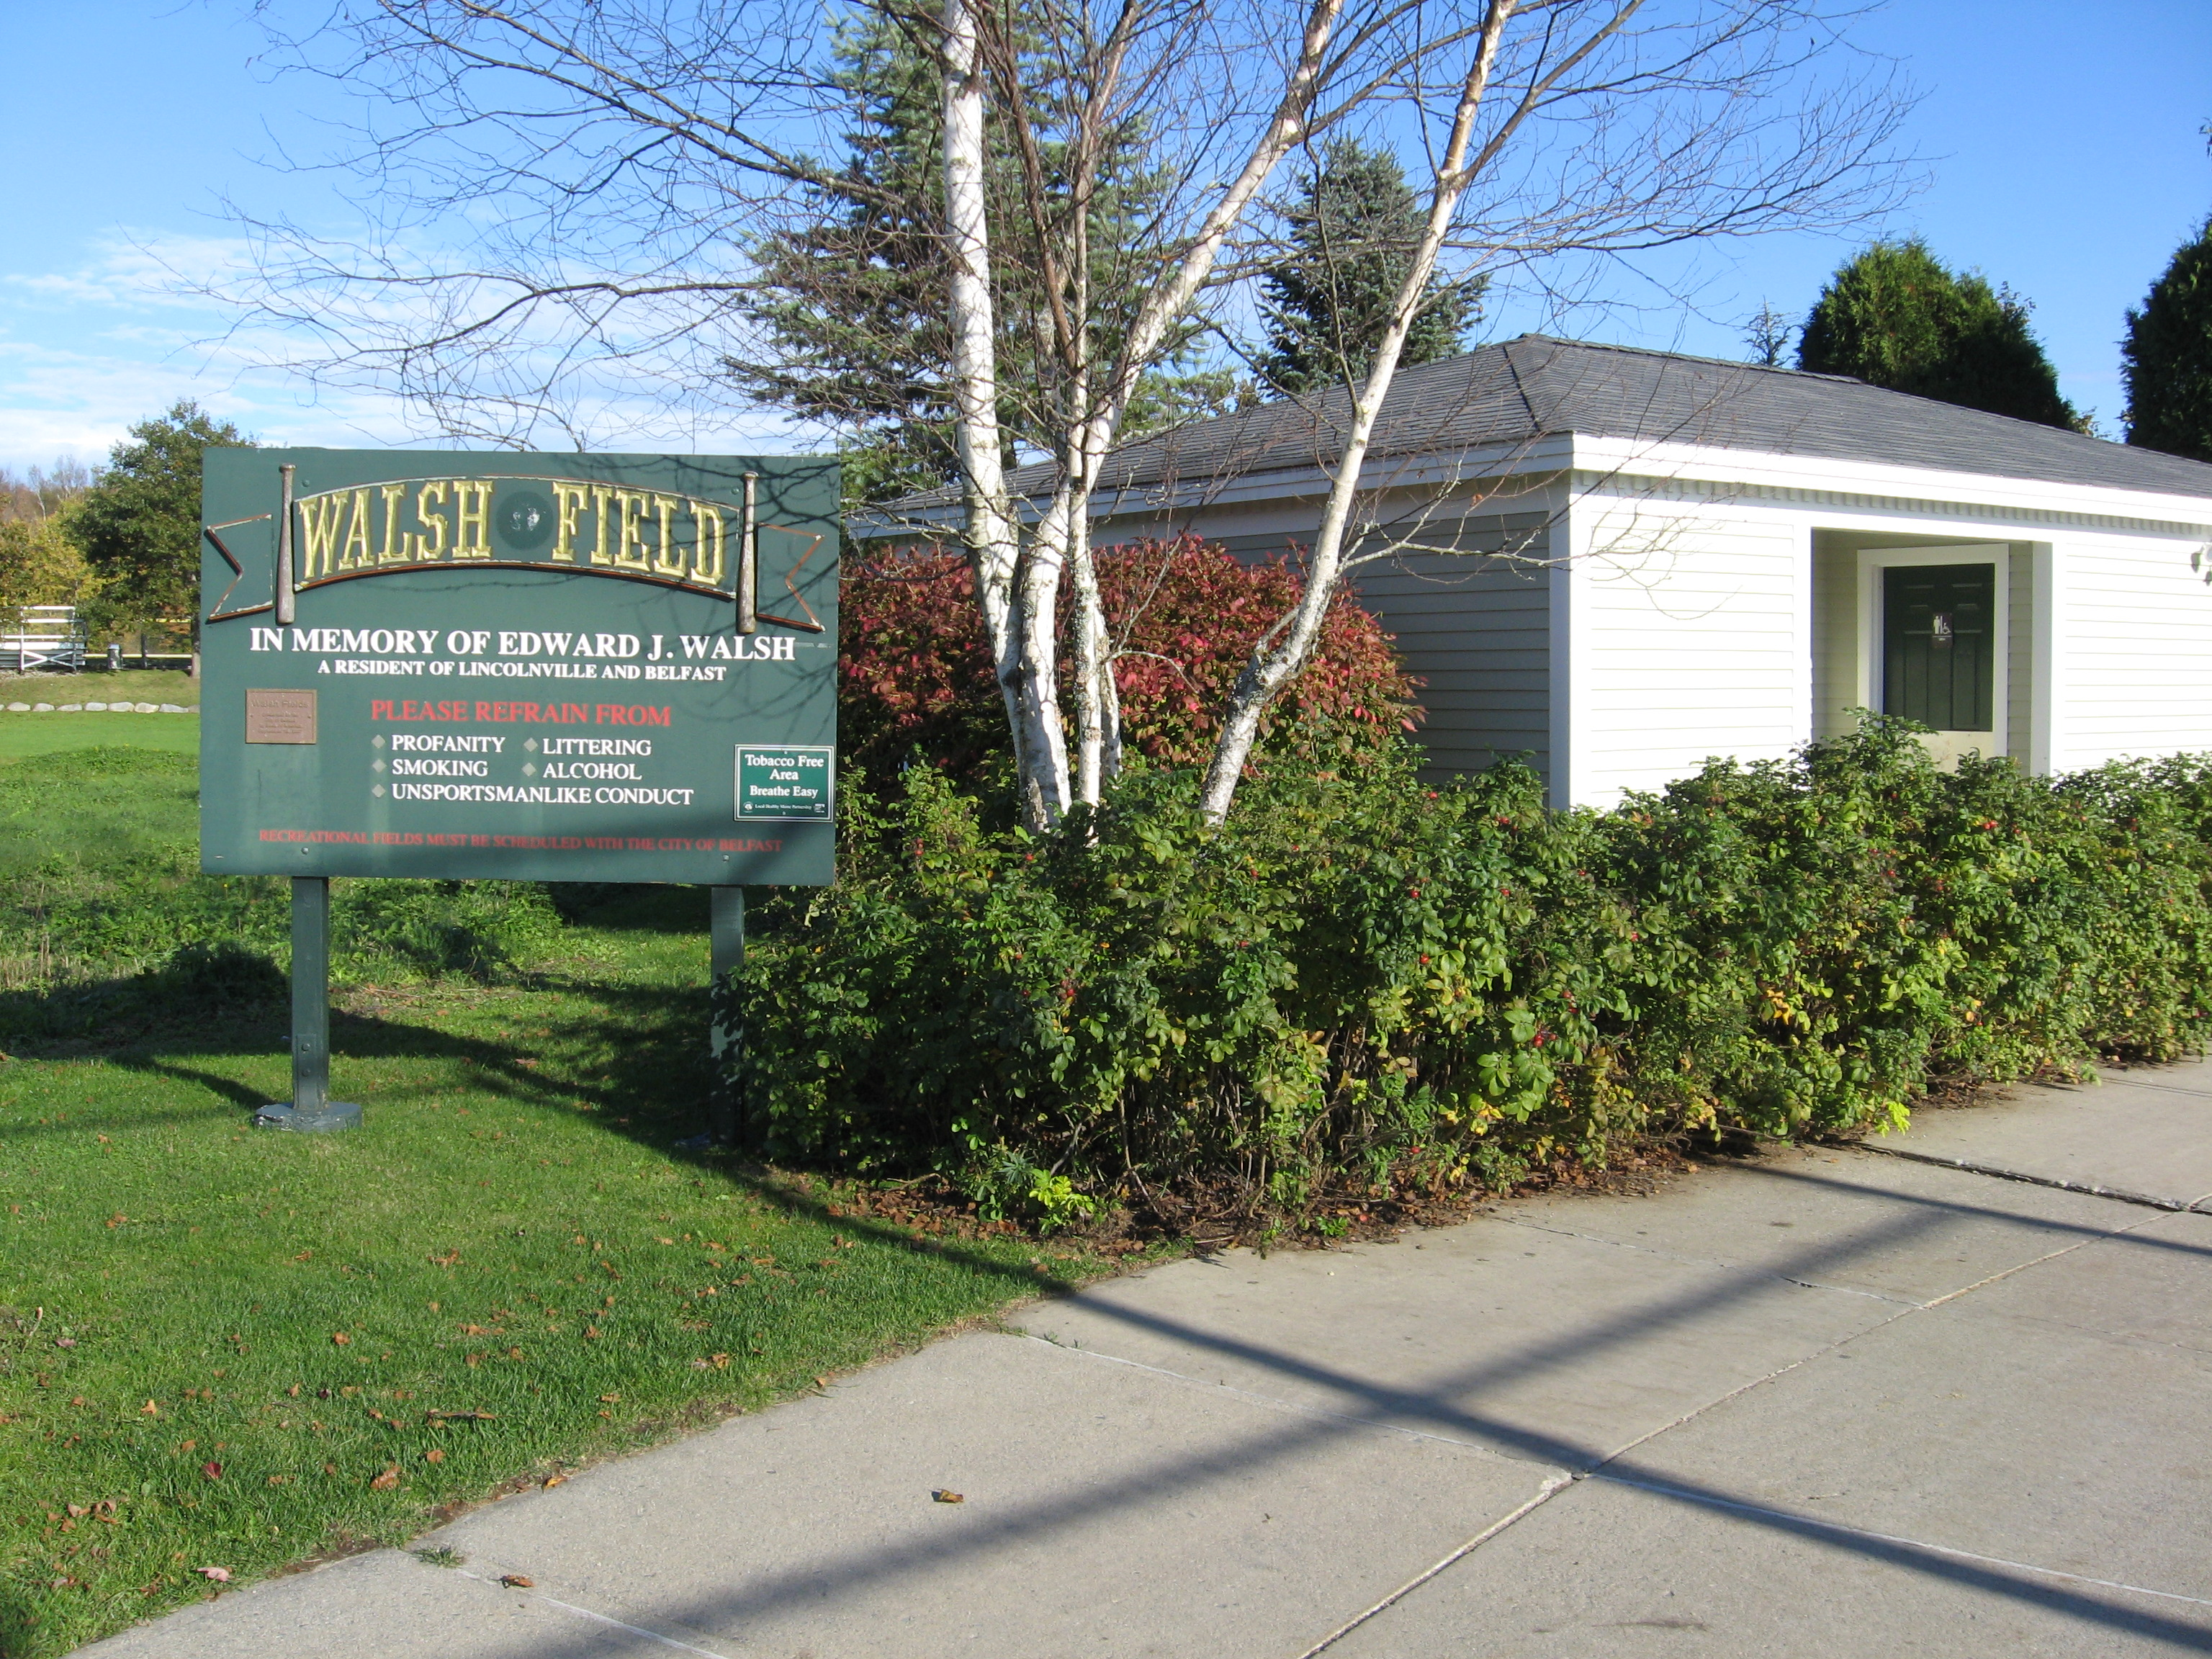 Walsh Field